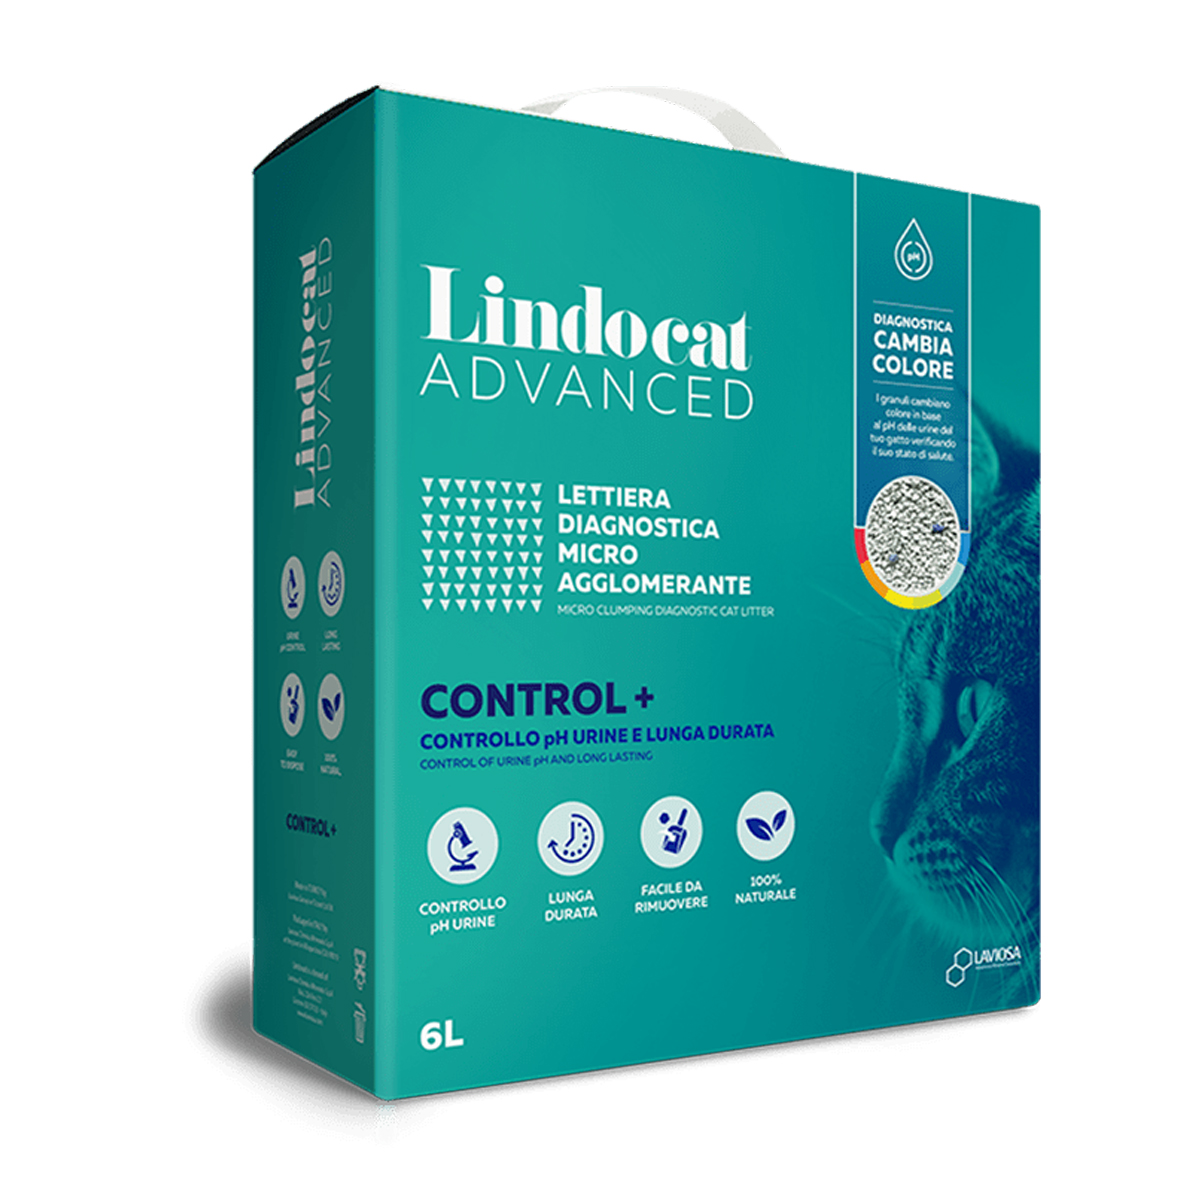 Lindocat Advanced Control Plus 6 Litri - Controllo del pH